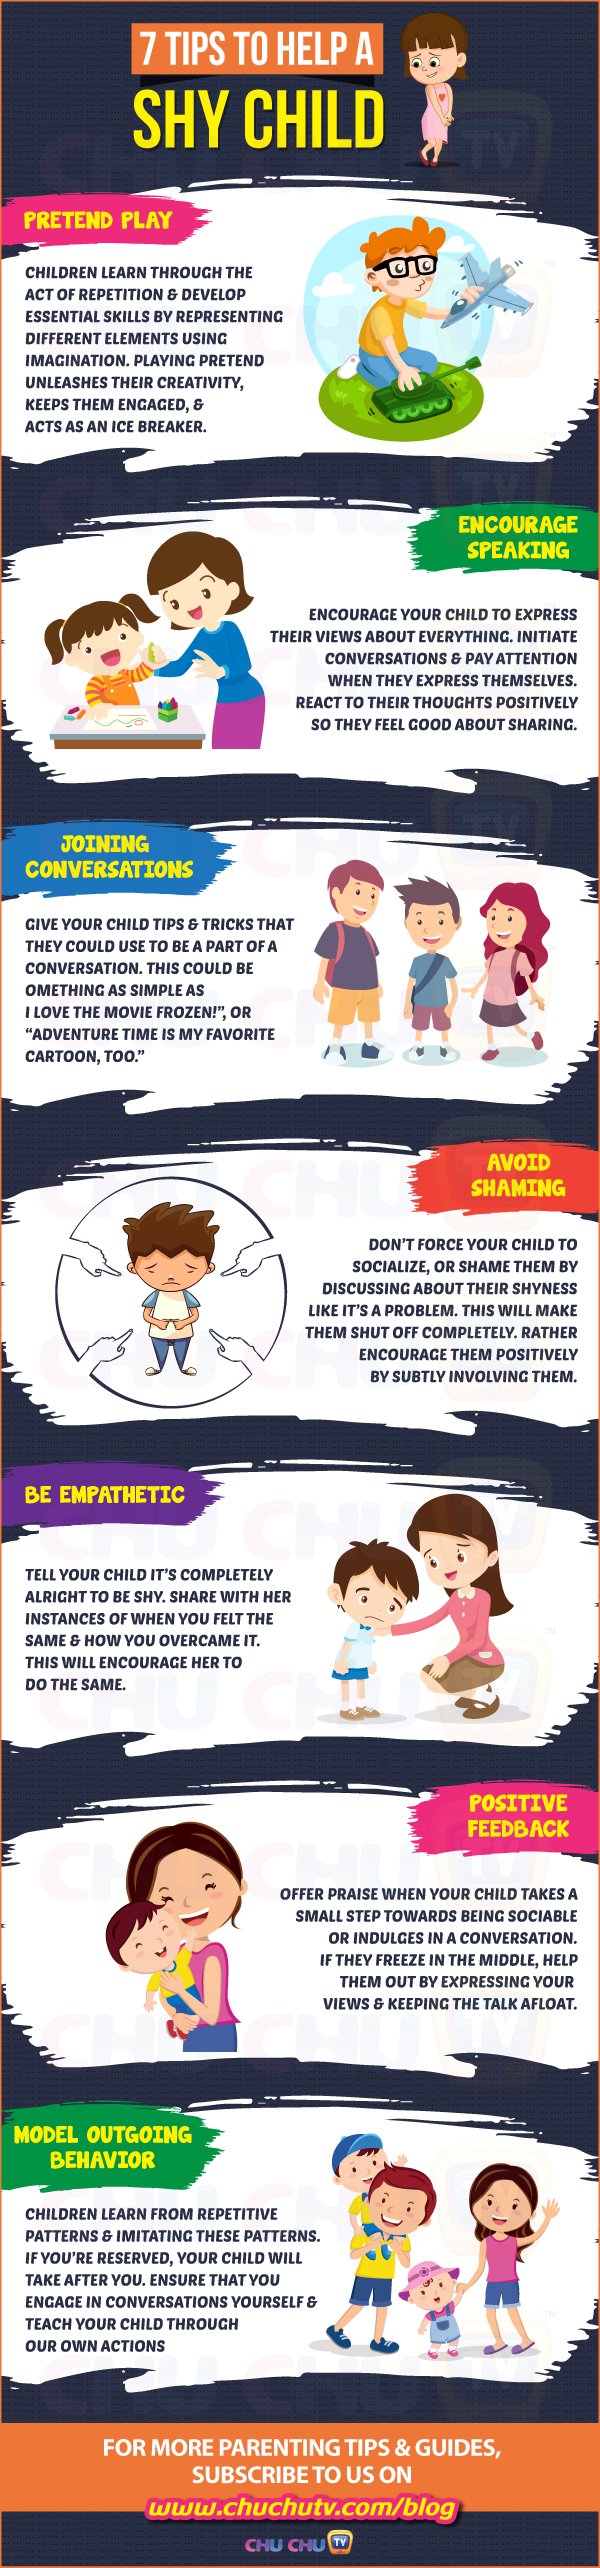 7 Tips to Help a Shy Child